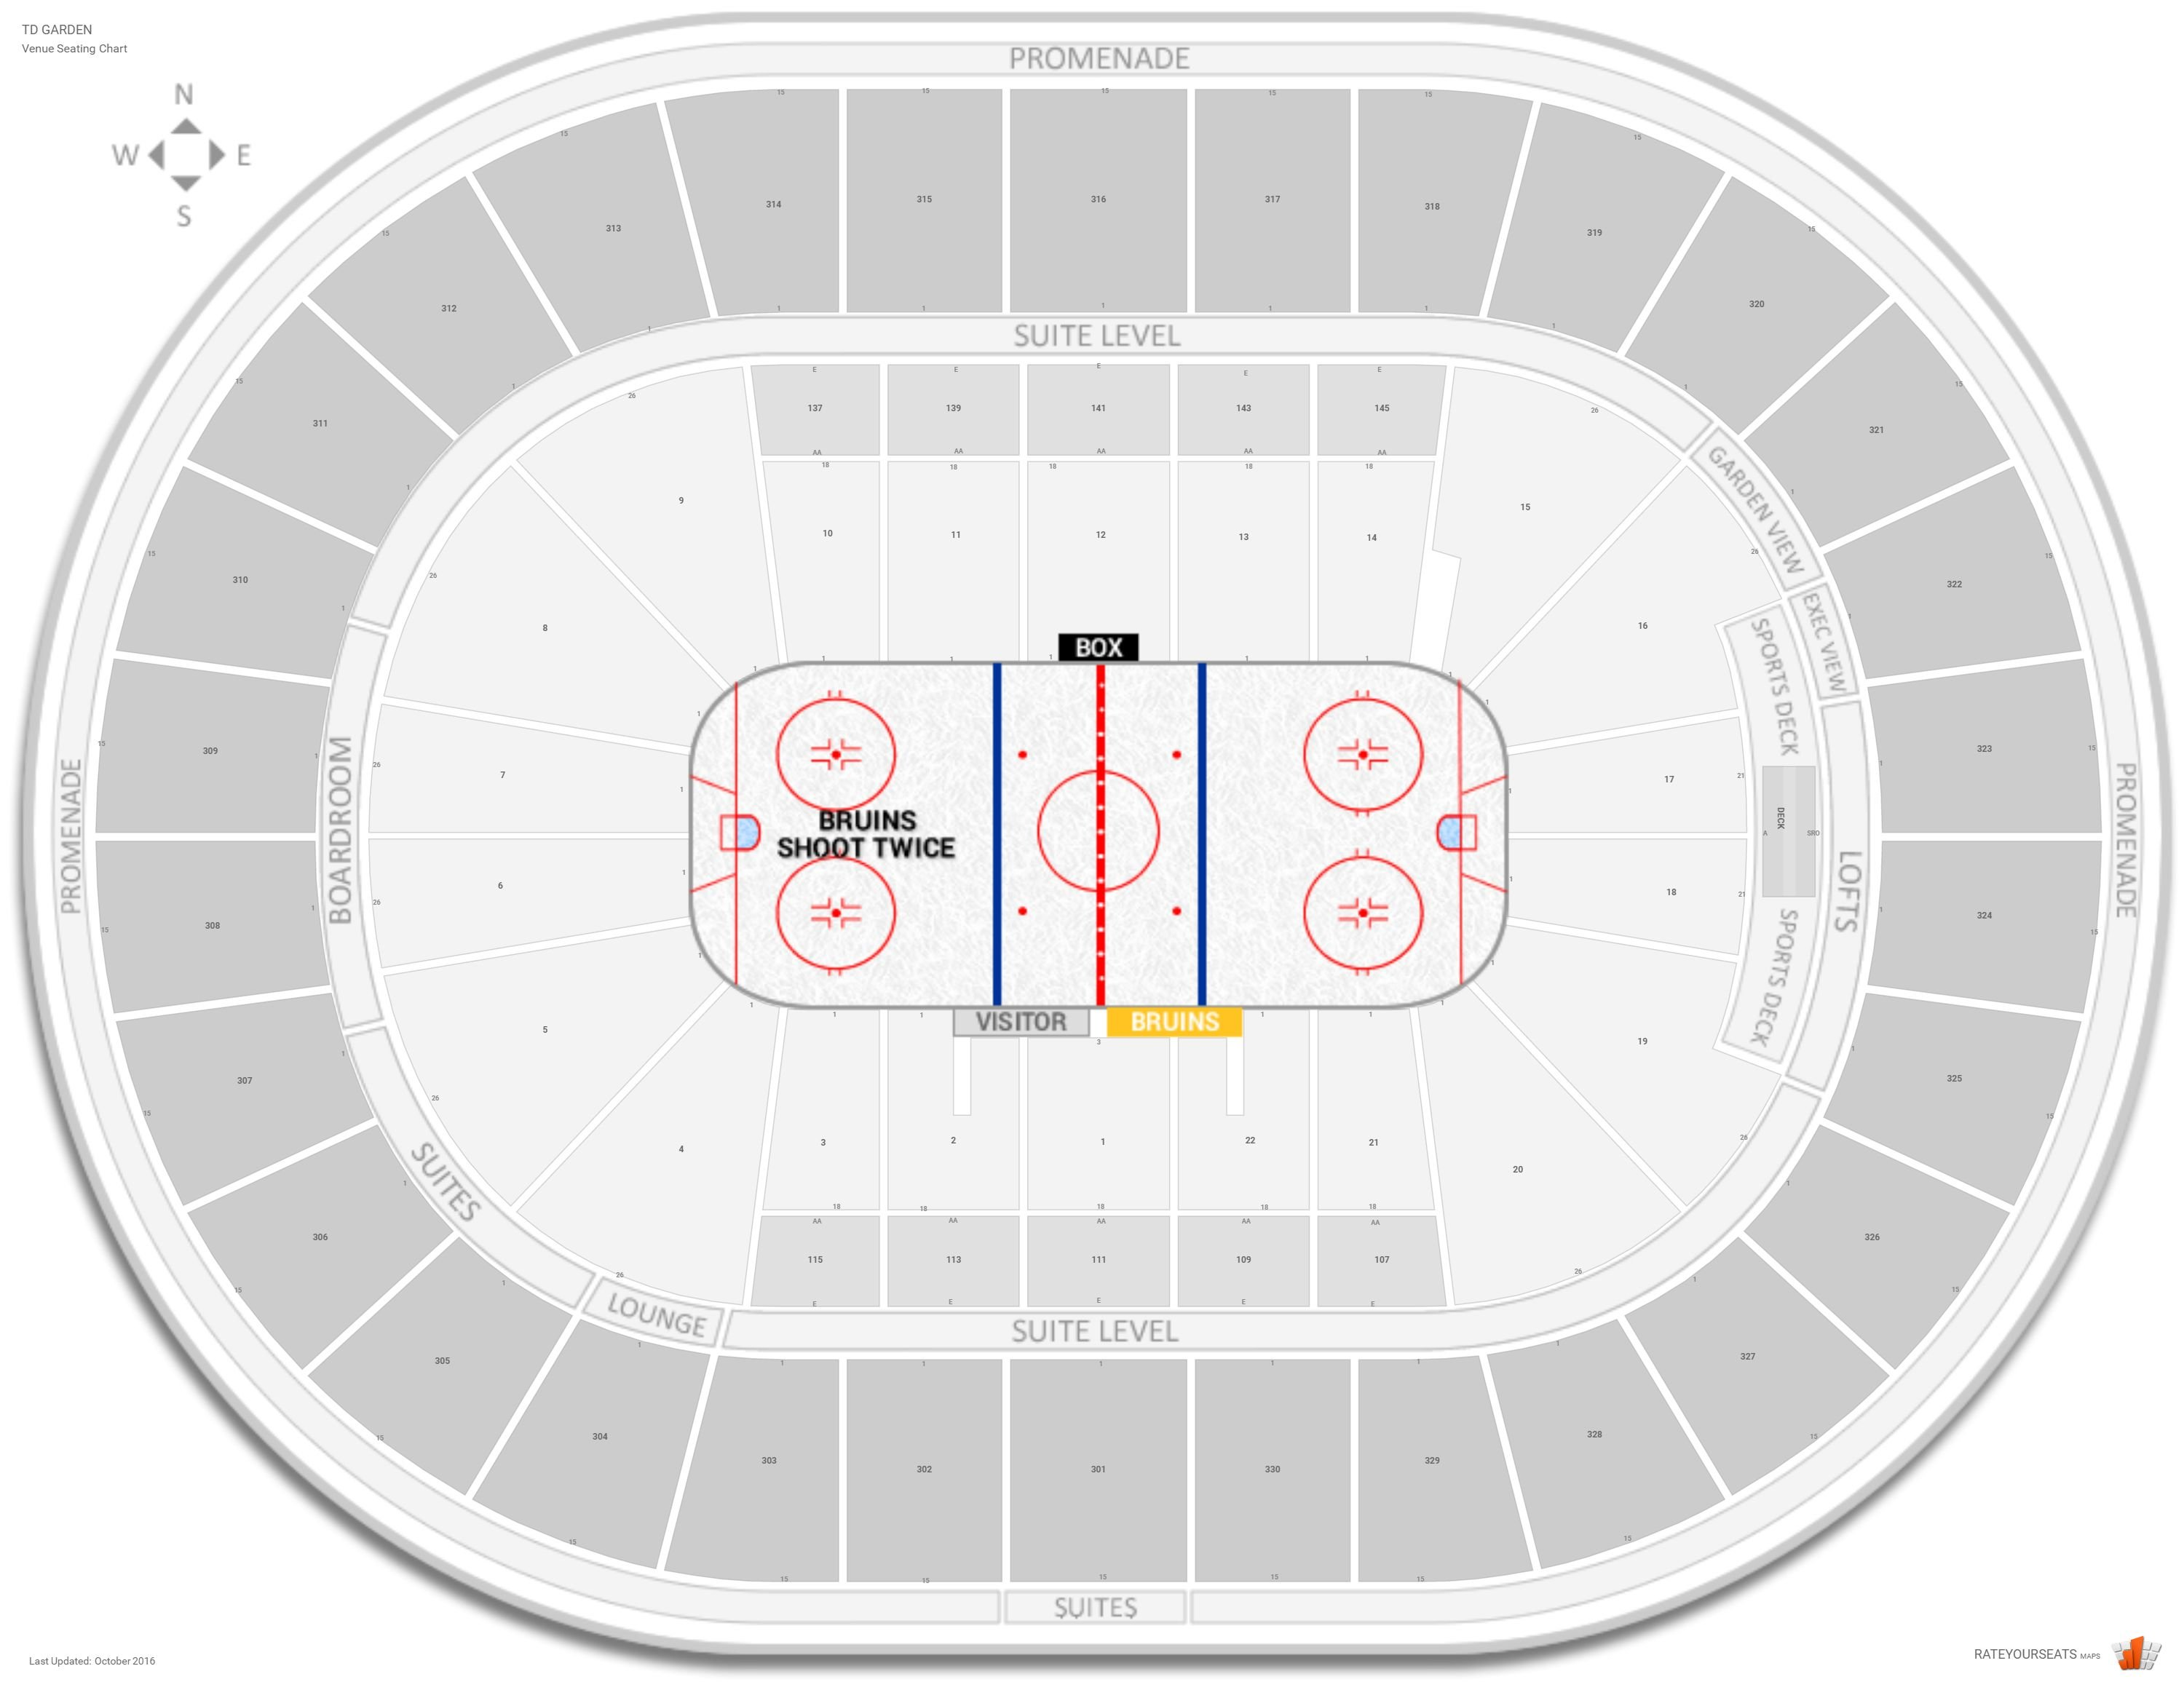 TD Garden Seating Chart with Row Numbers